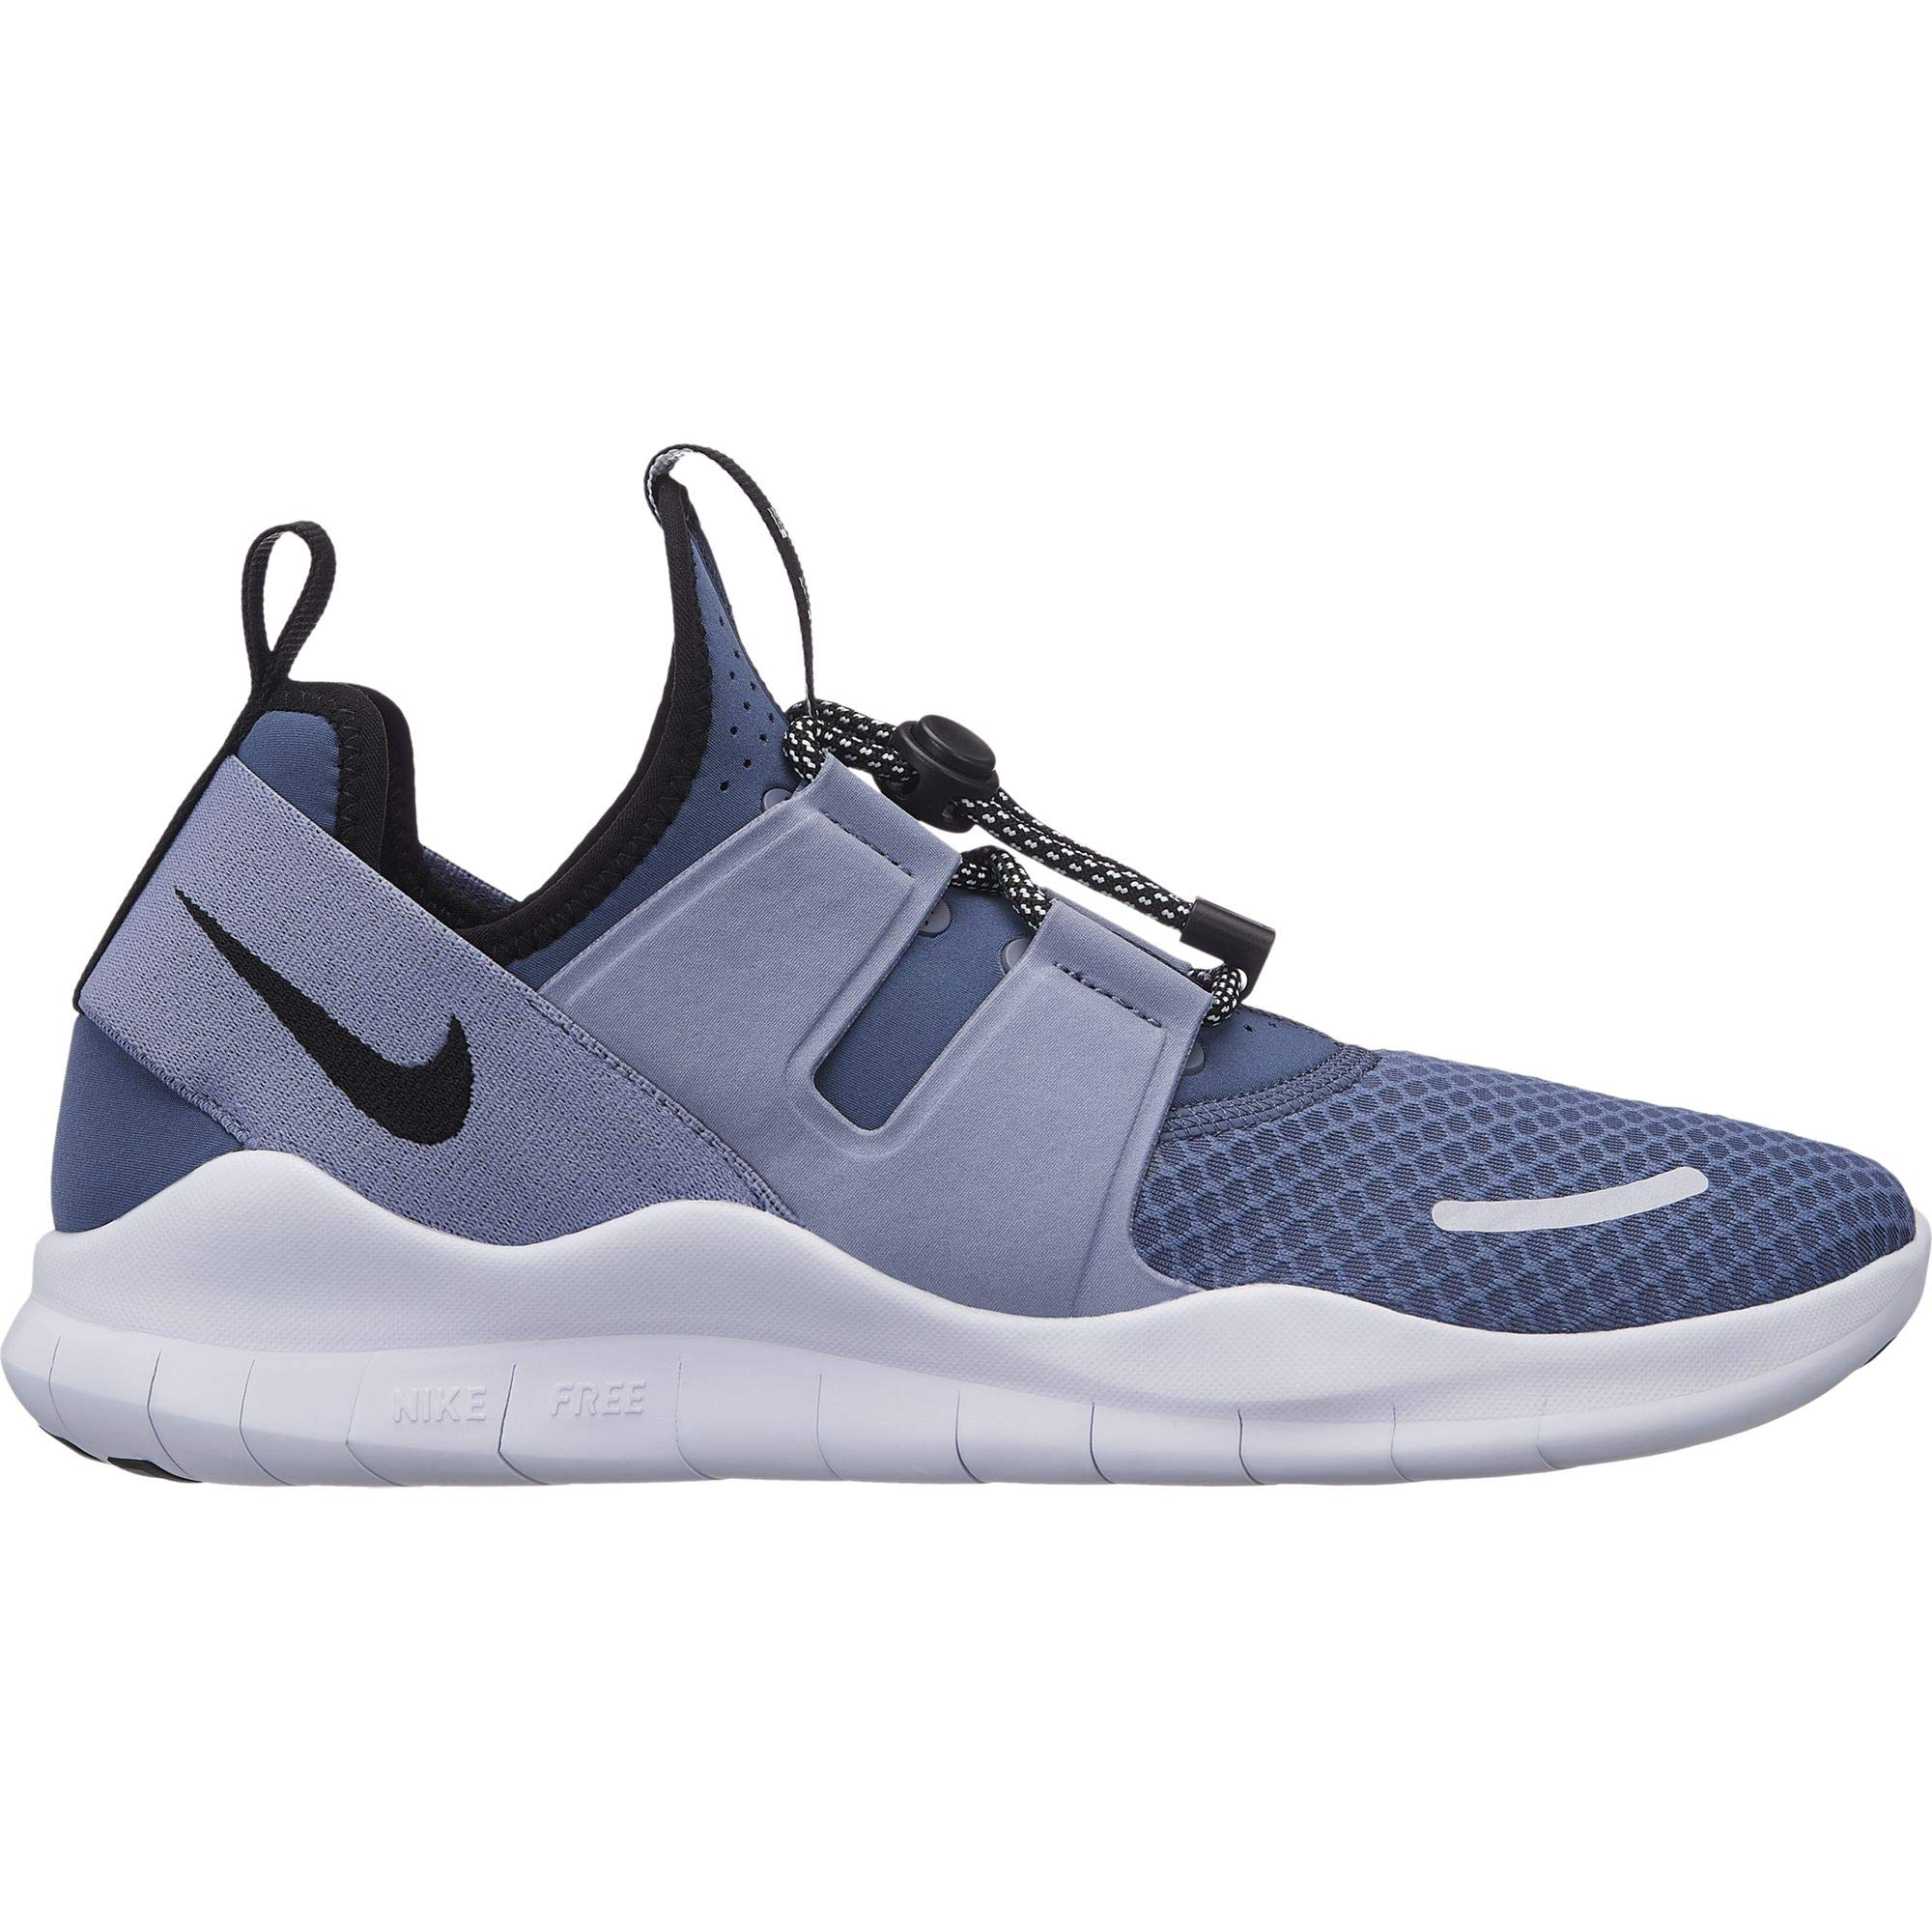 Nike AA1620 100 Men's Running Nike Free RN Commuter 2018